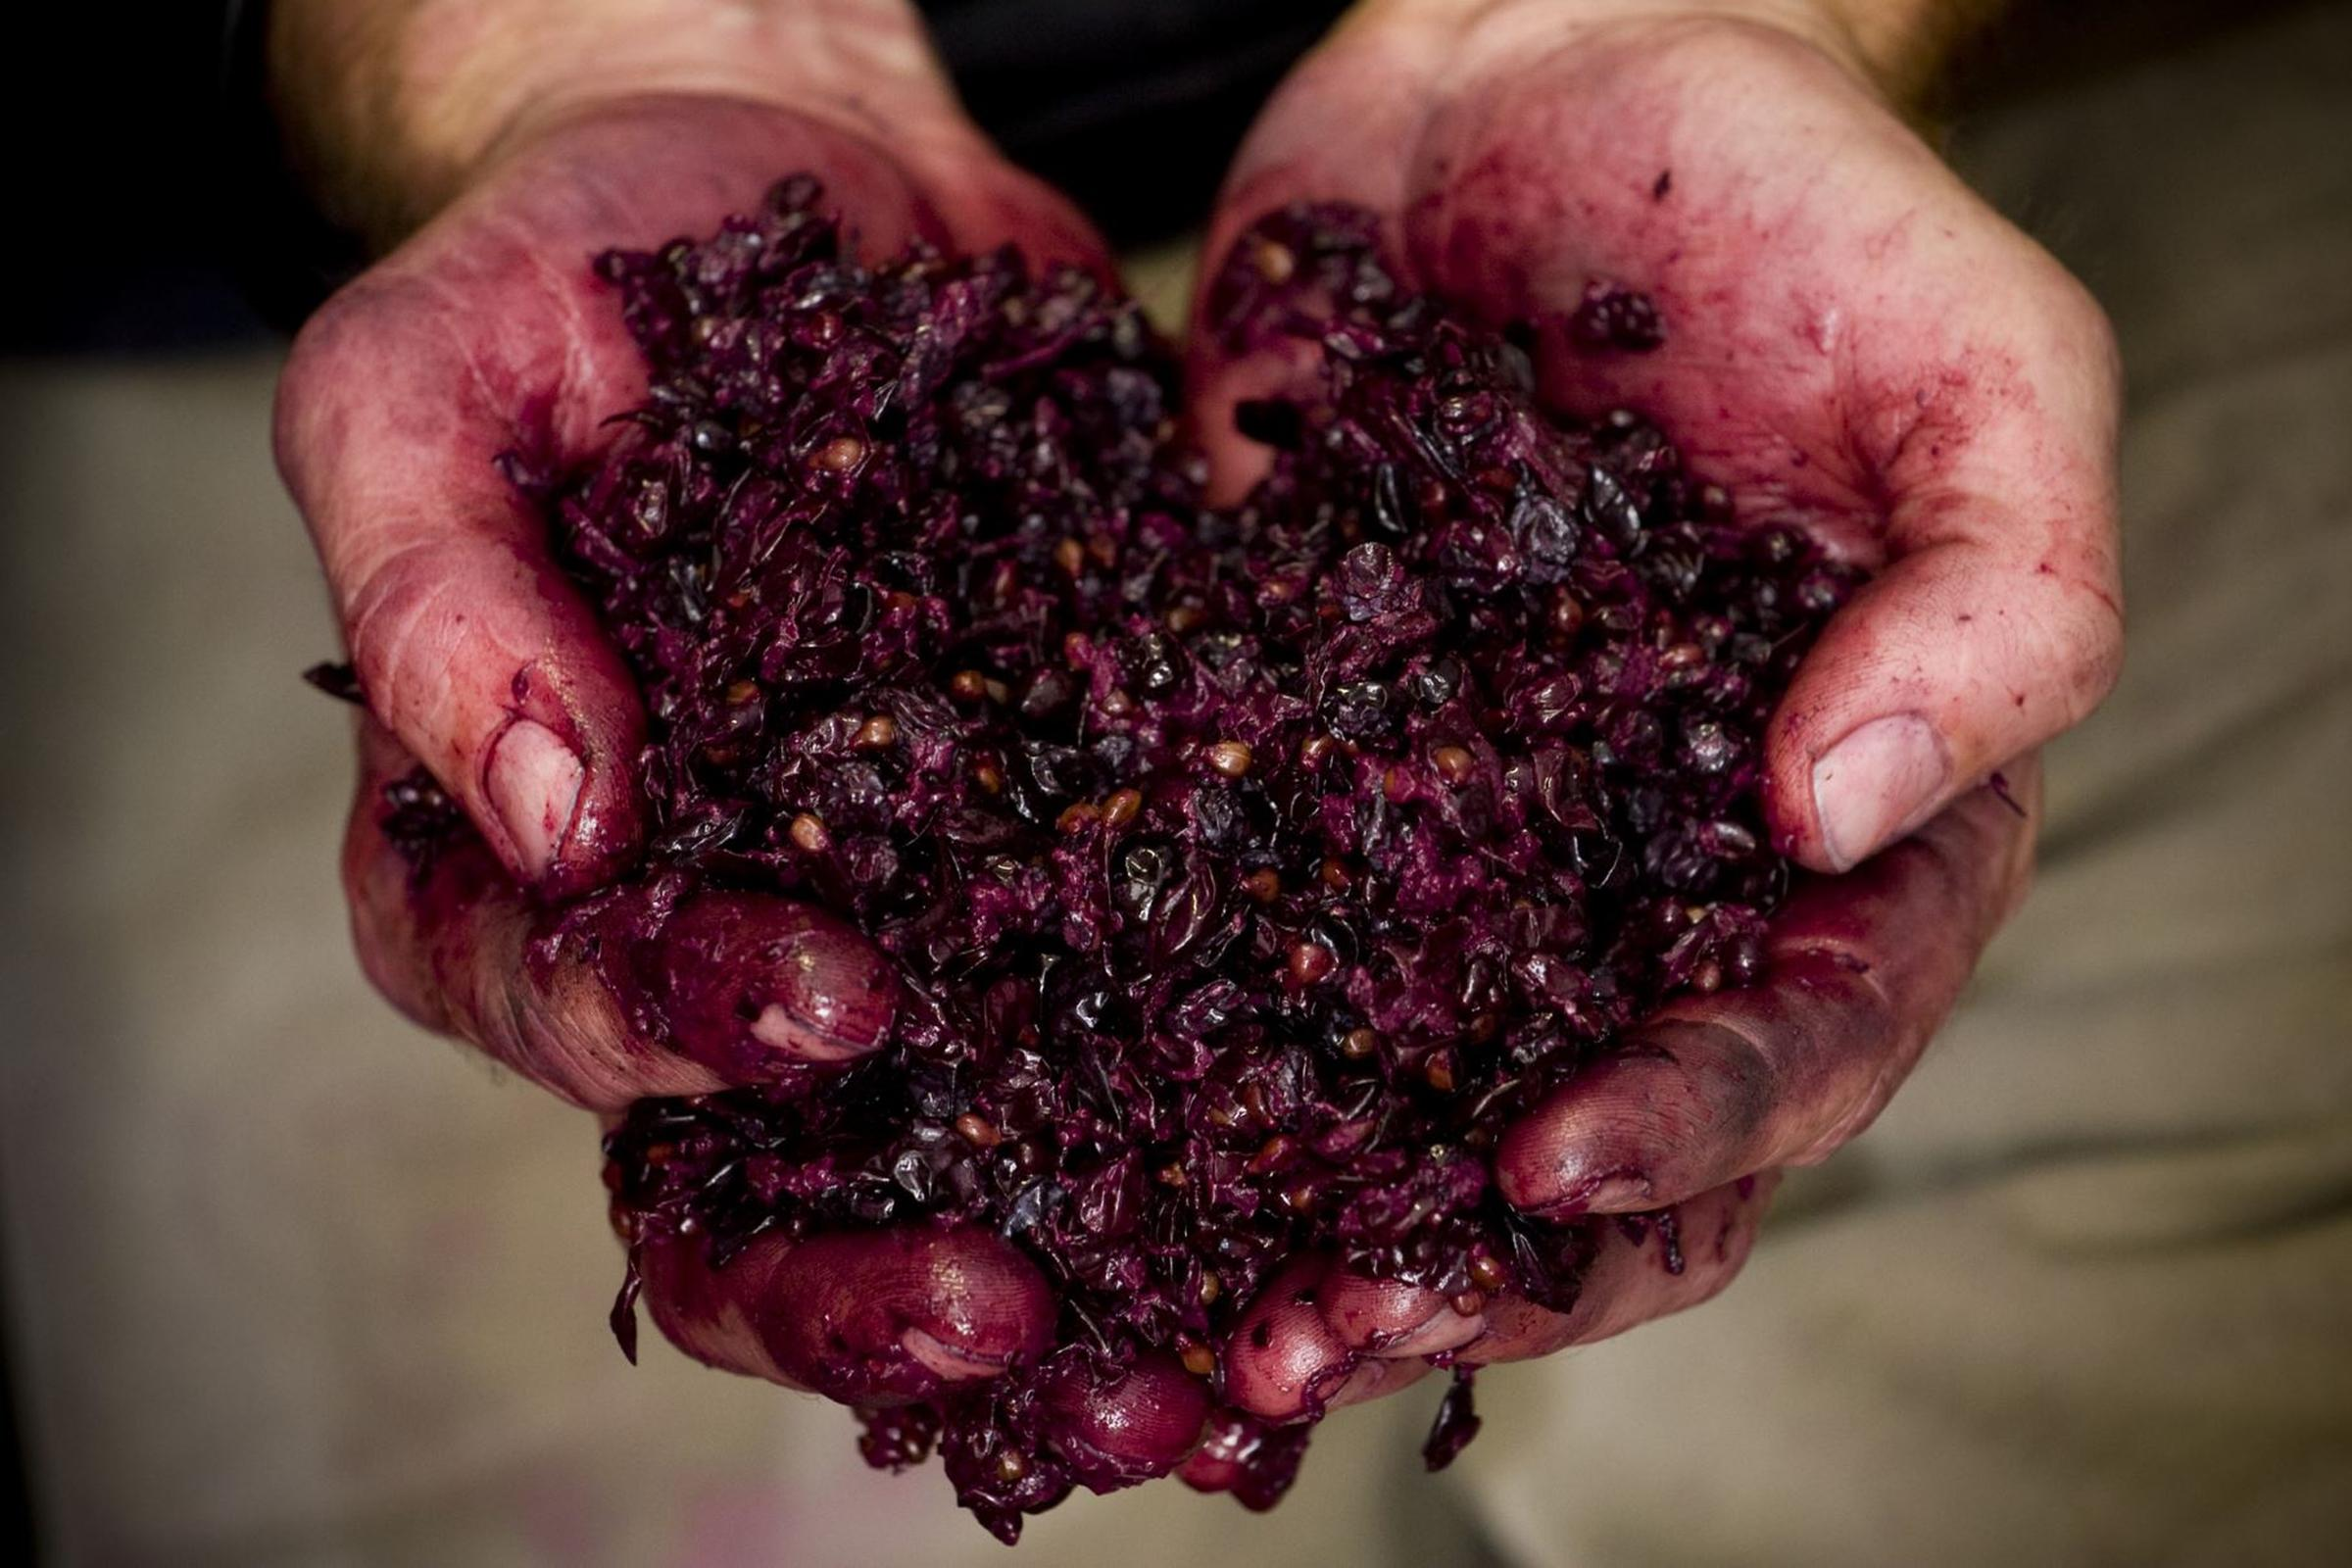 https://a.storyblok.com/f/105614/1818x1212/8782585e6a/gemtree-mikes-hands-with-grapes.jpeg